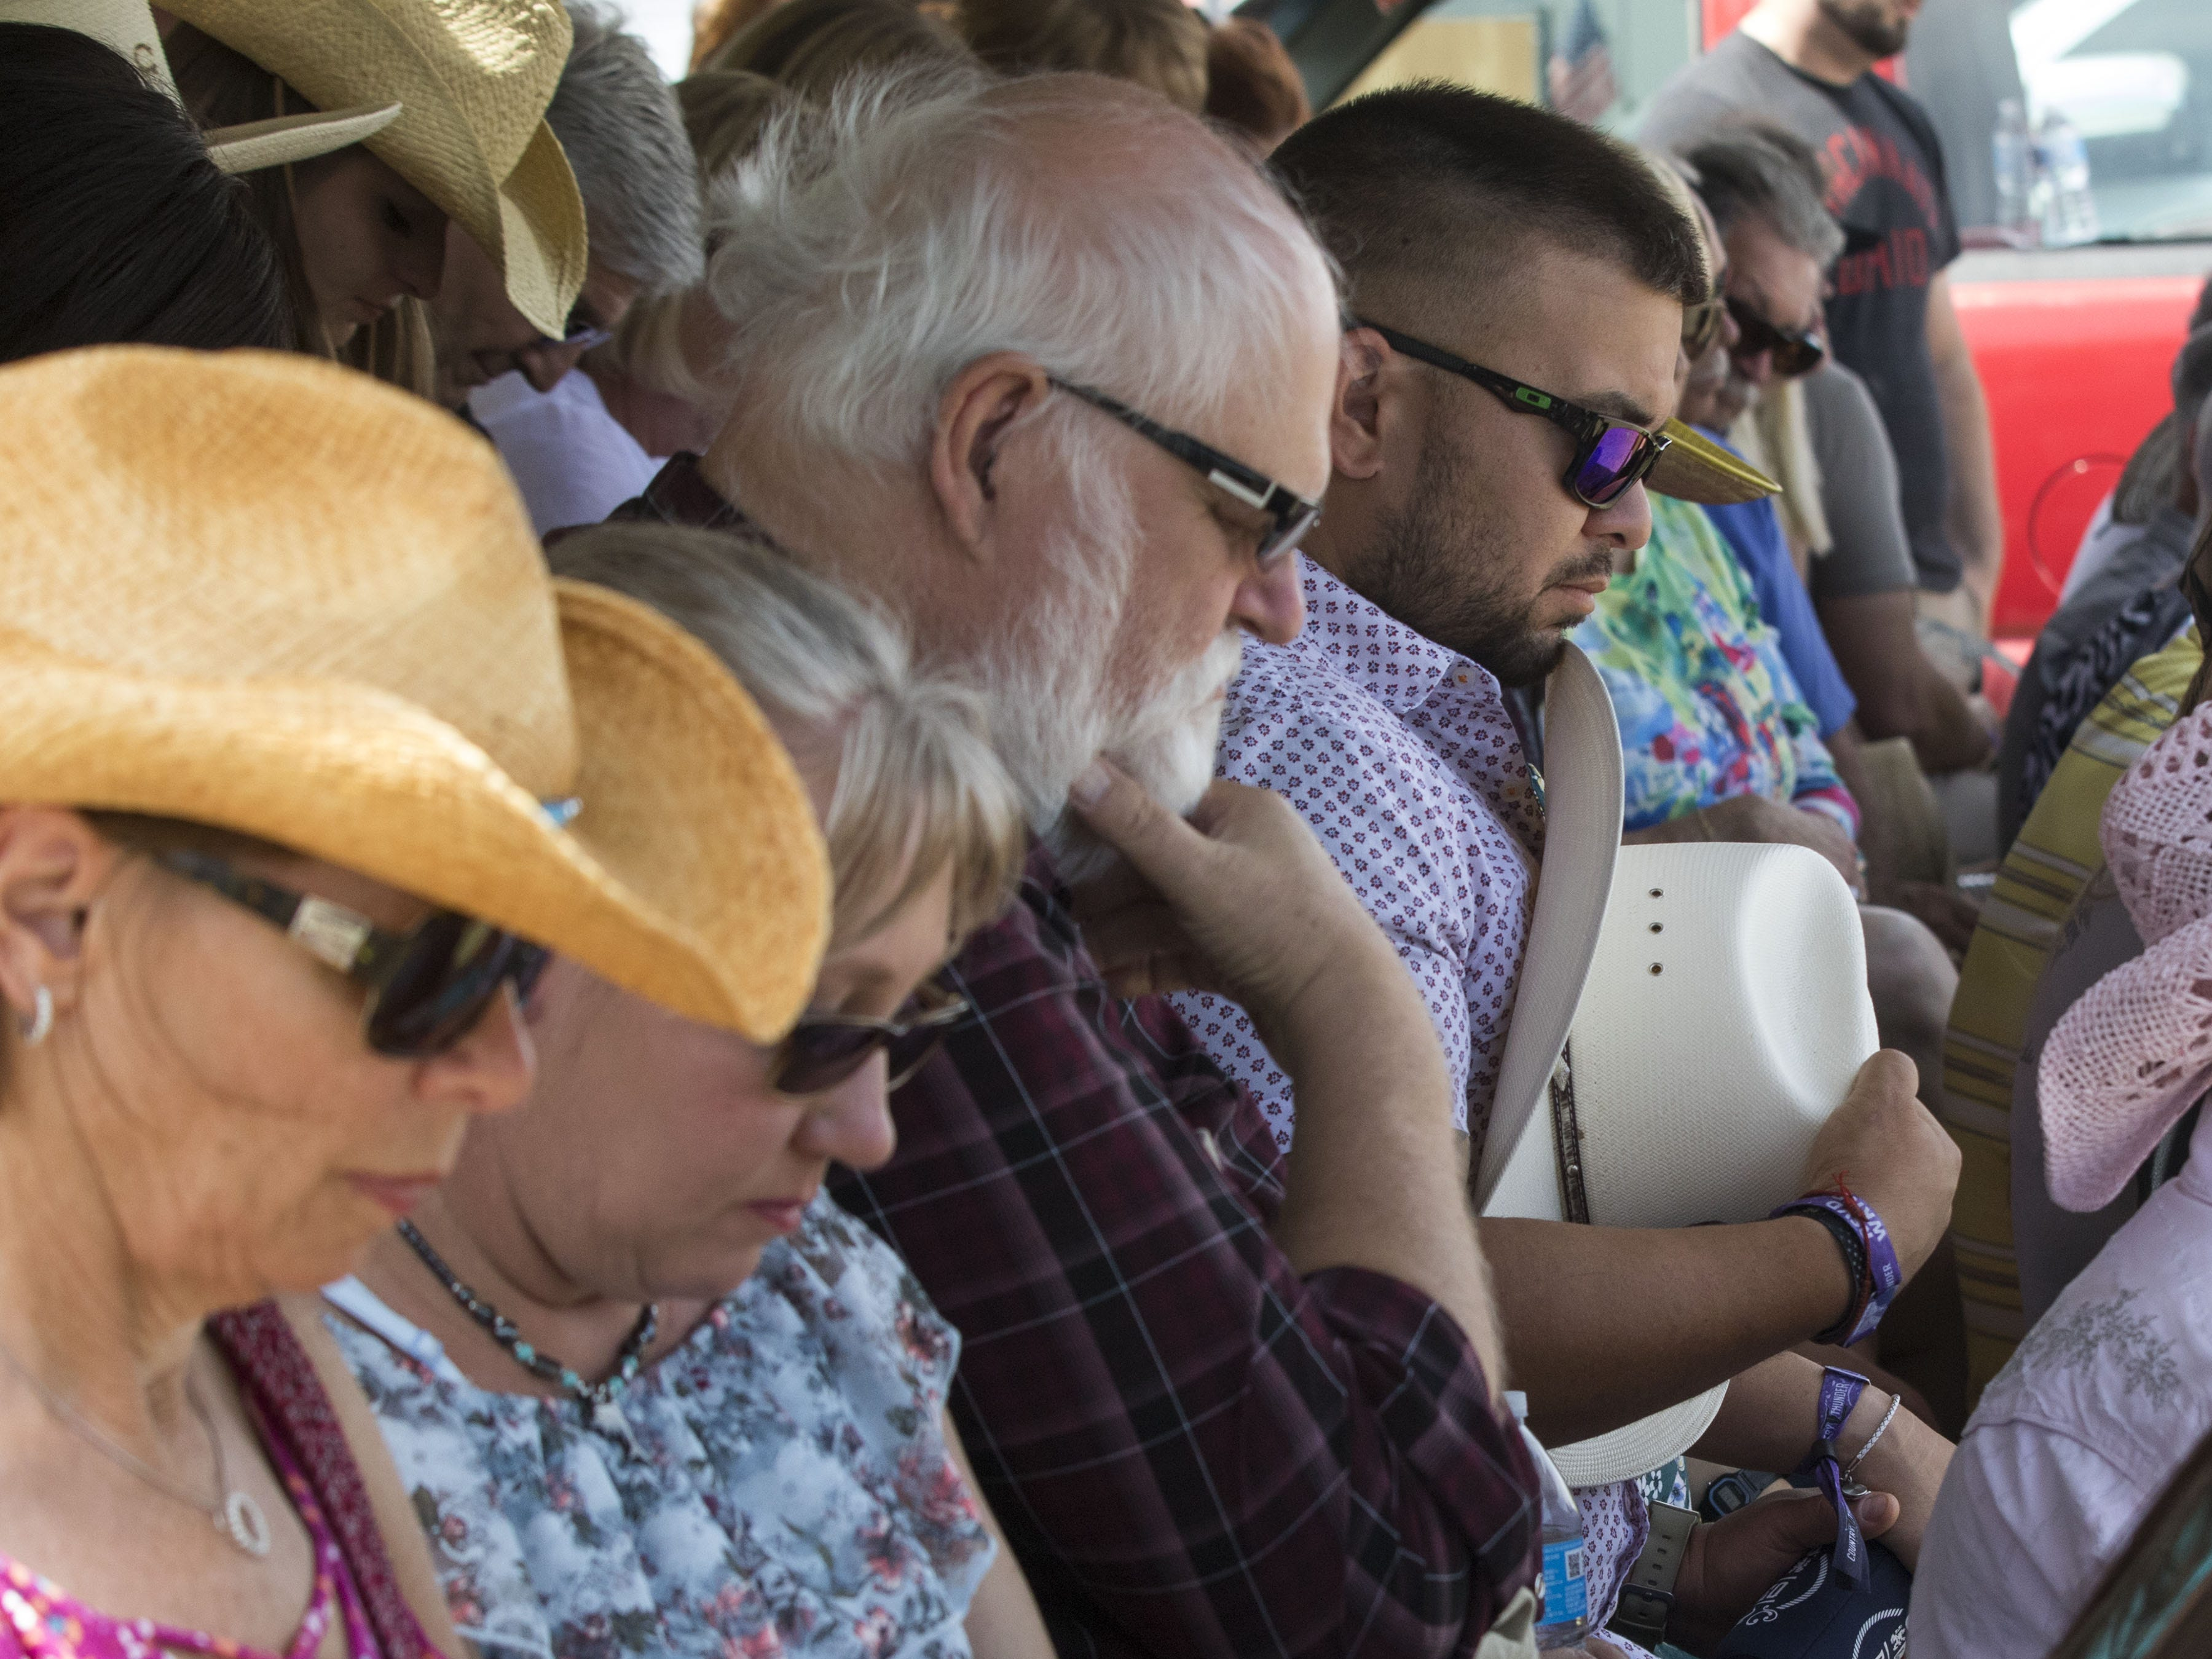 Church-goers bow their heads in prayer during Cowboy Church at Country Thunder Arizona on Sunday, April 14, 2019, in Florence, Arizona.